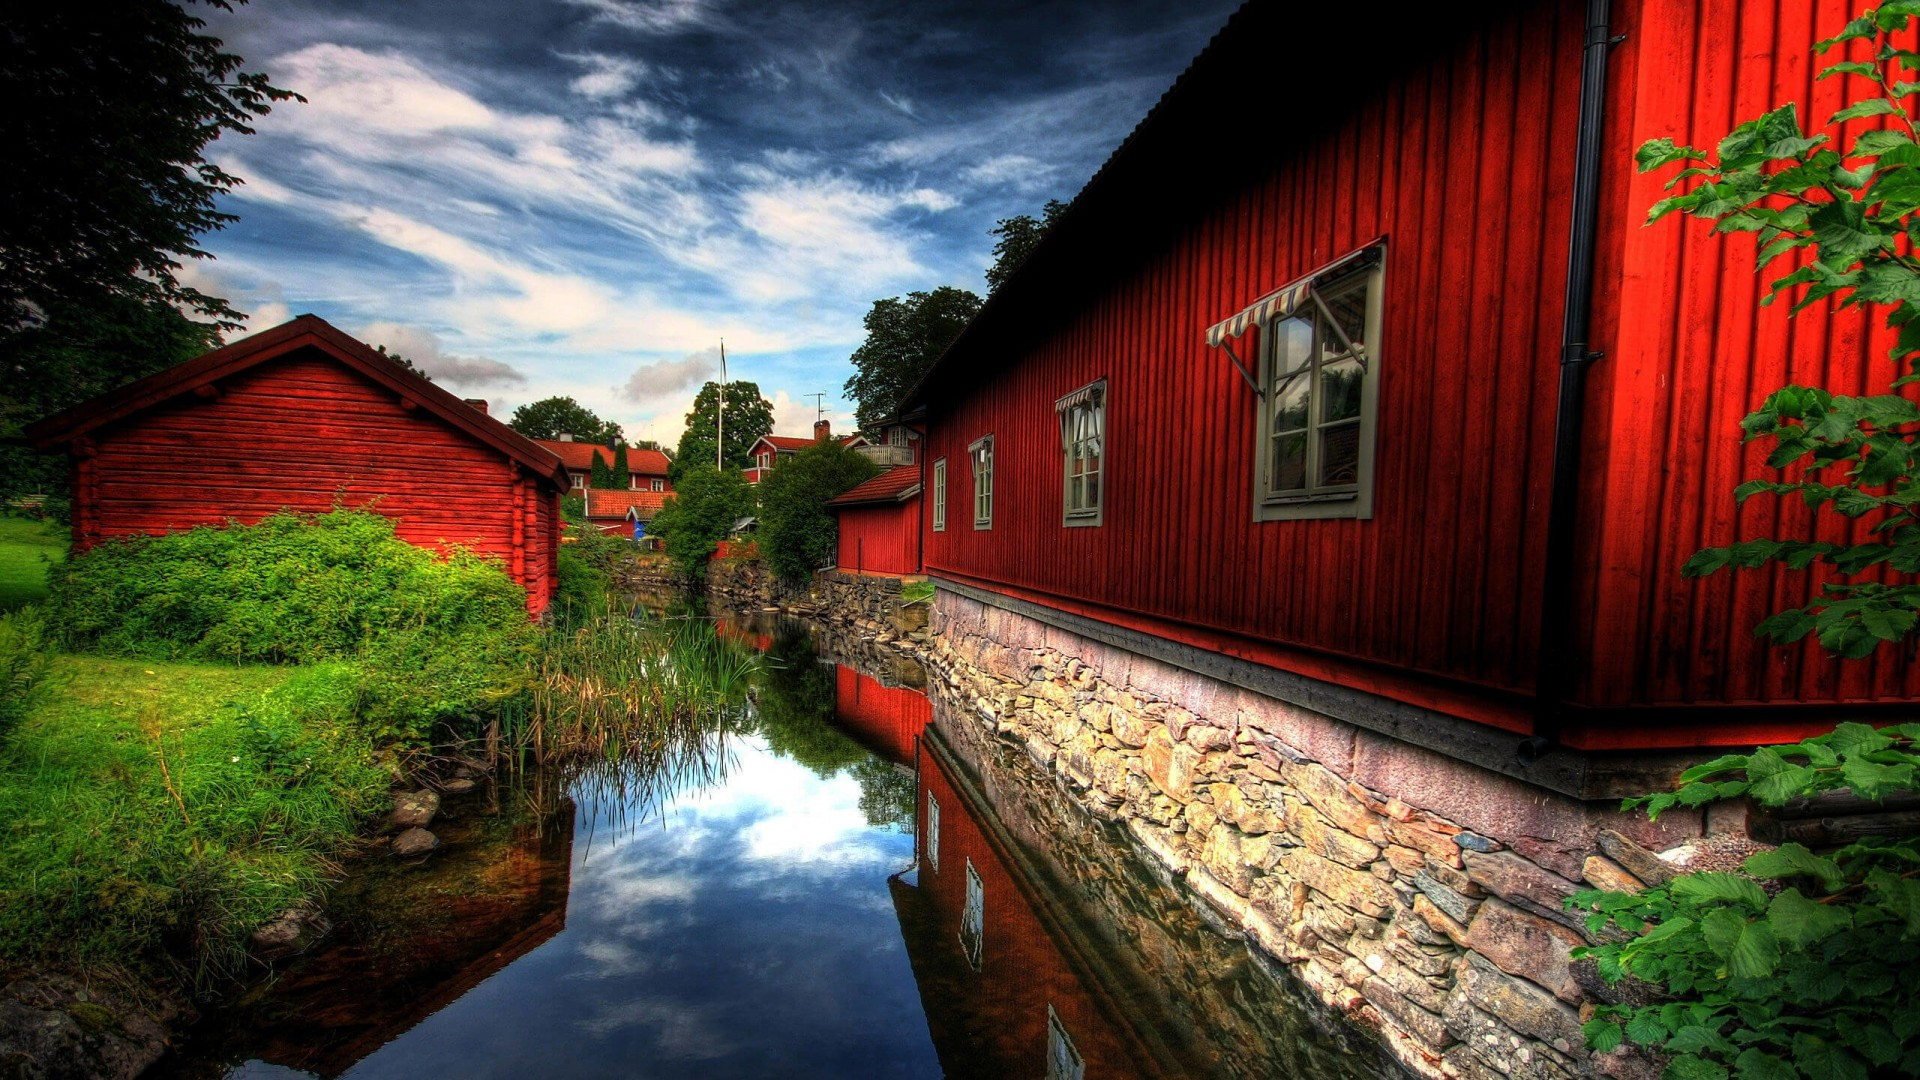 Red Village, Norberg, Sweden Wallpaper for Desktop 1920x1080